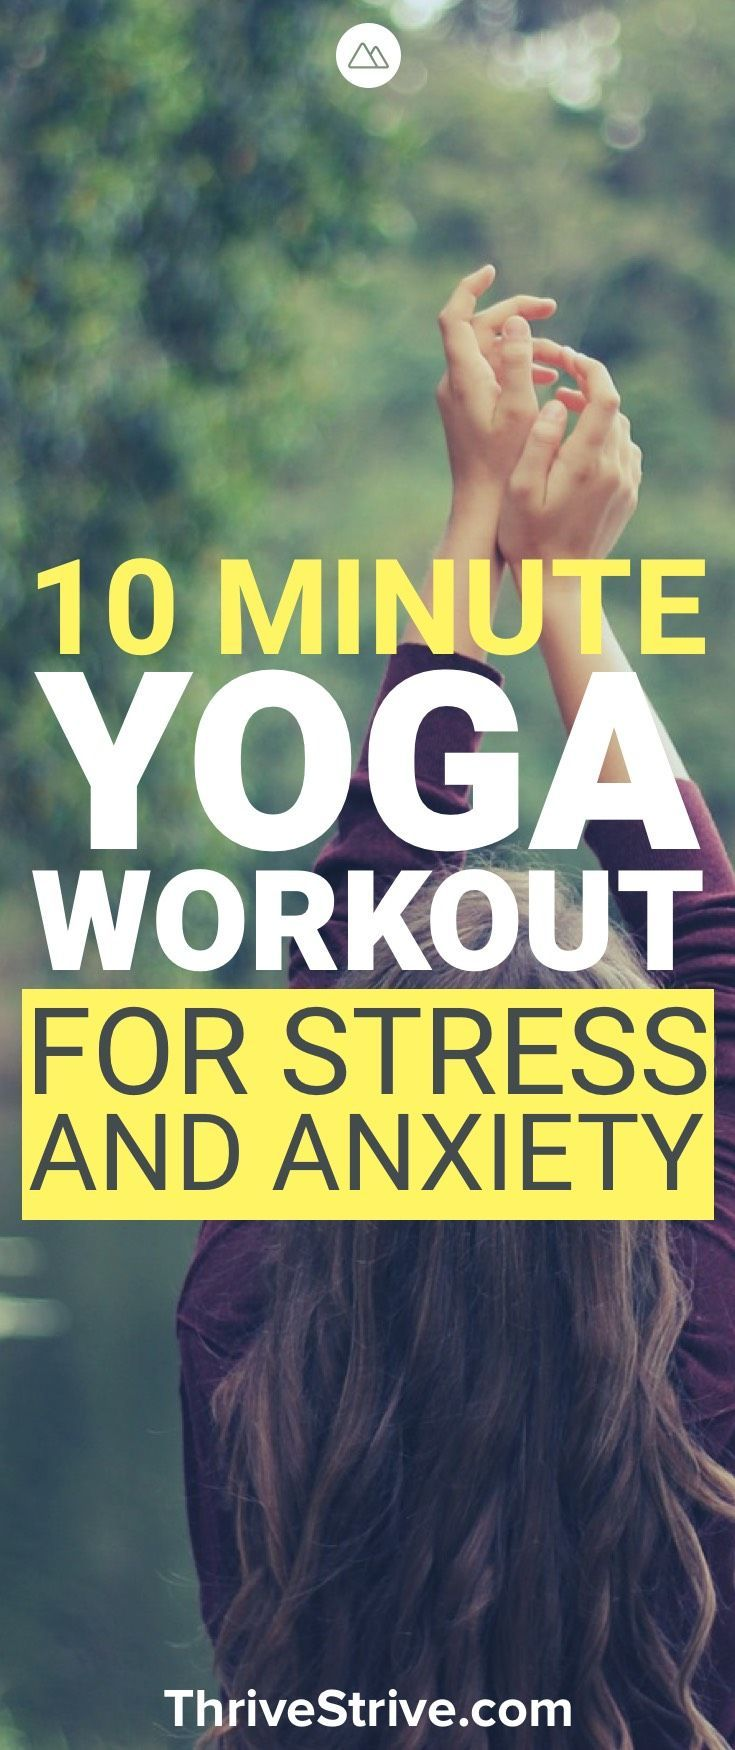 Yoga is great for stress and anxiety. In this 10-minute yoga workout you will le...